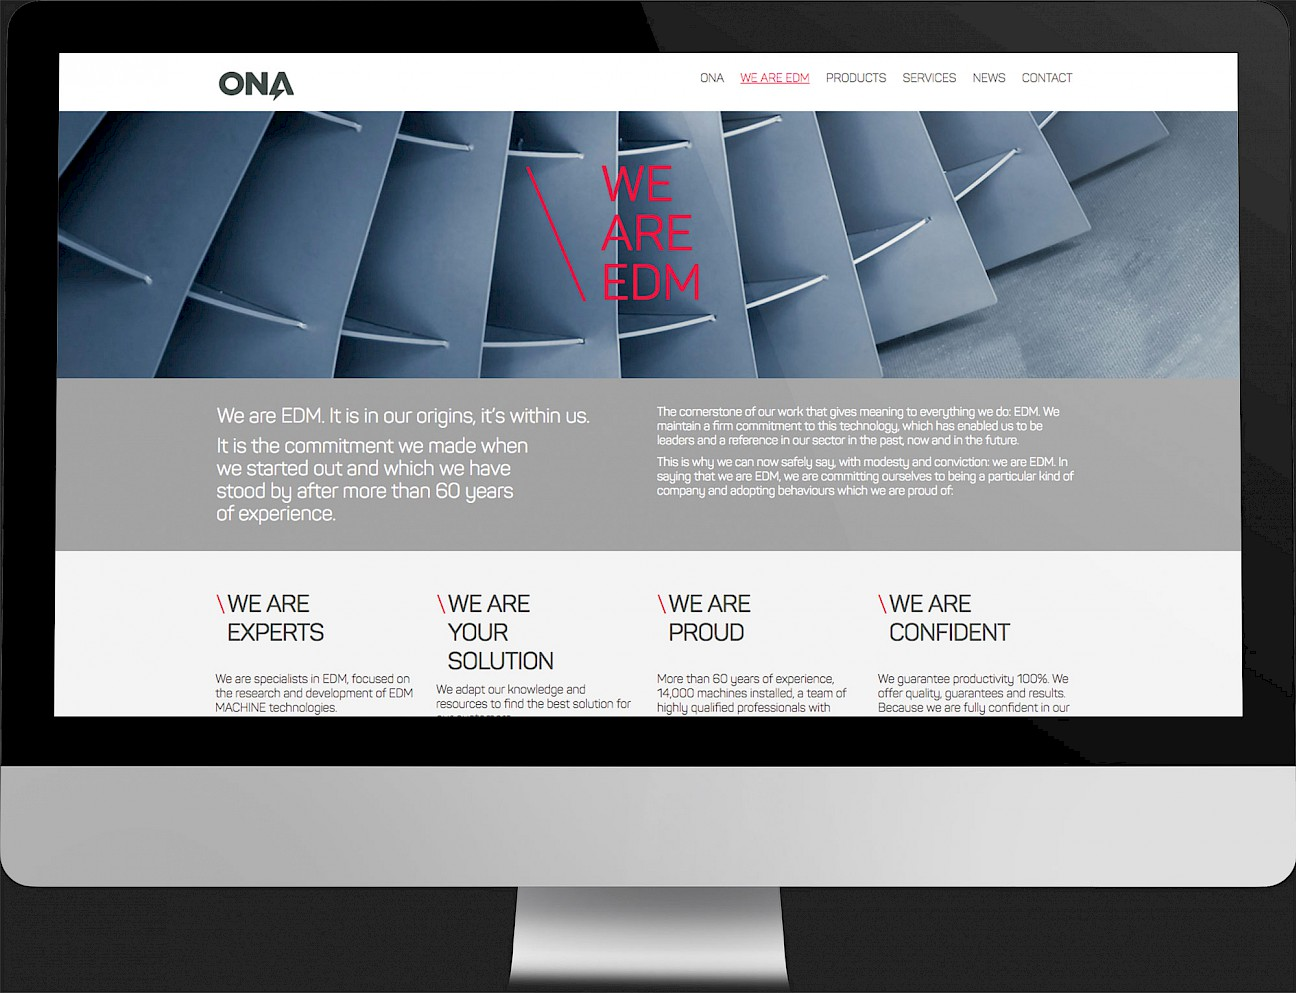 narrative design spaces digital 04 technology branding website move ona